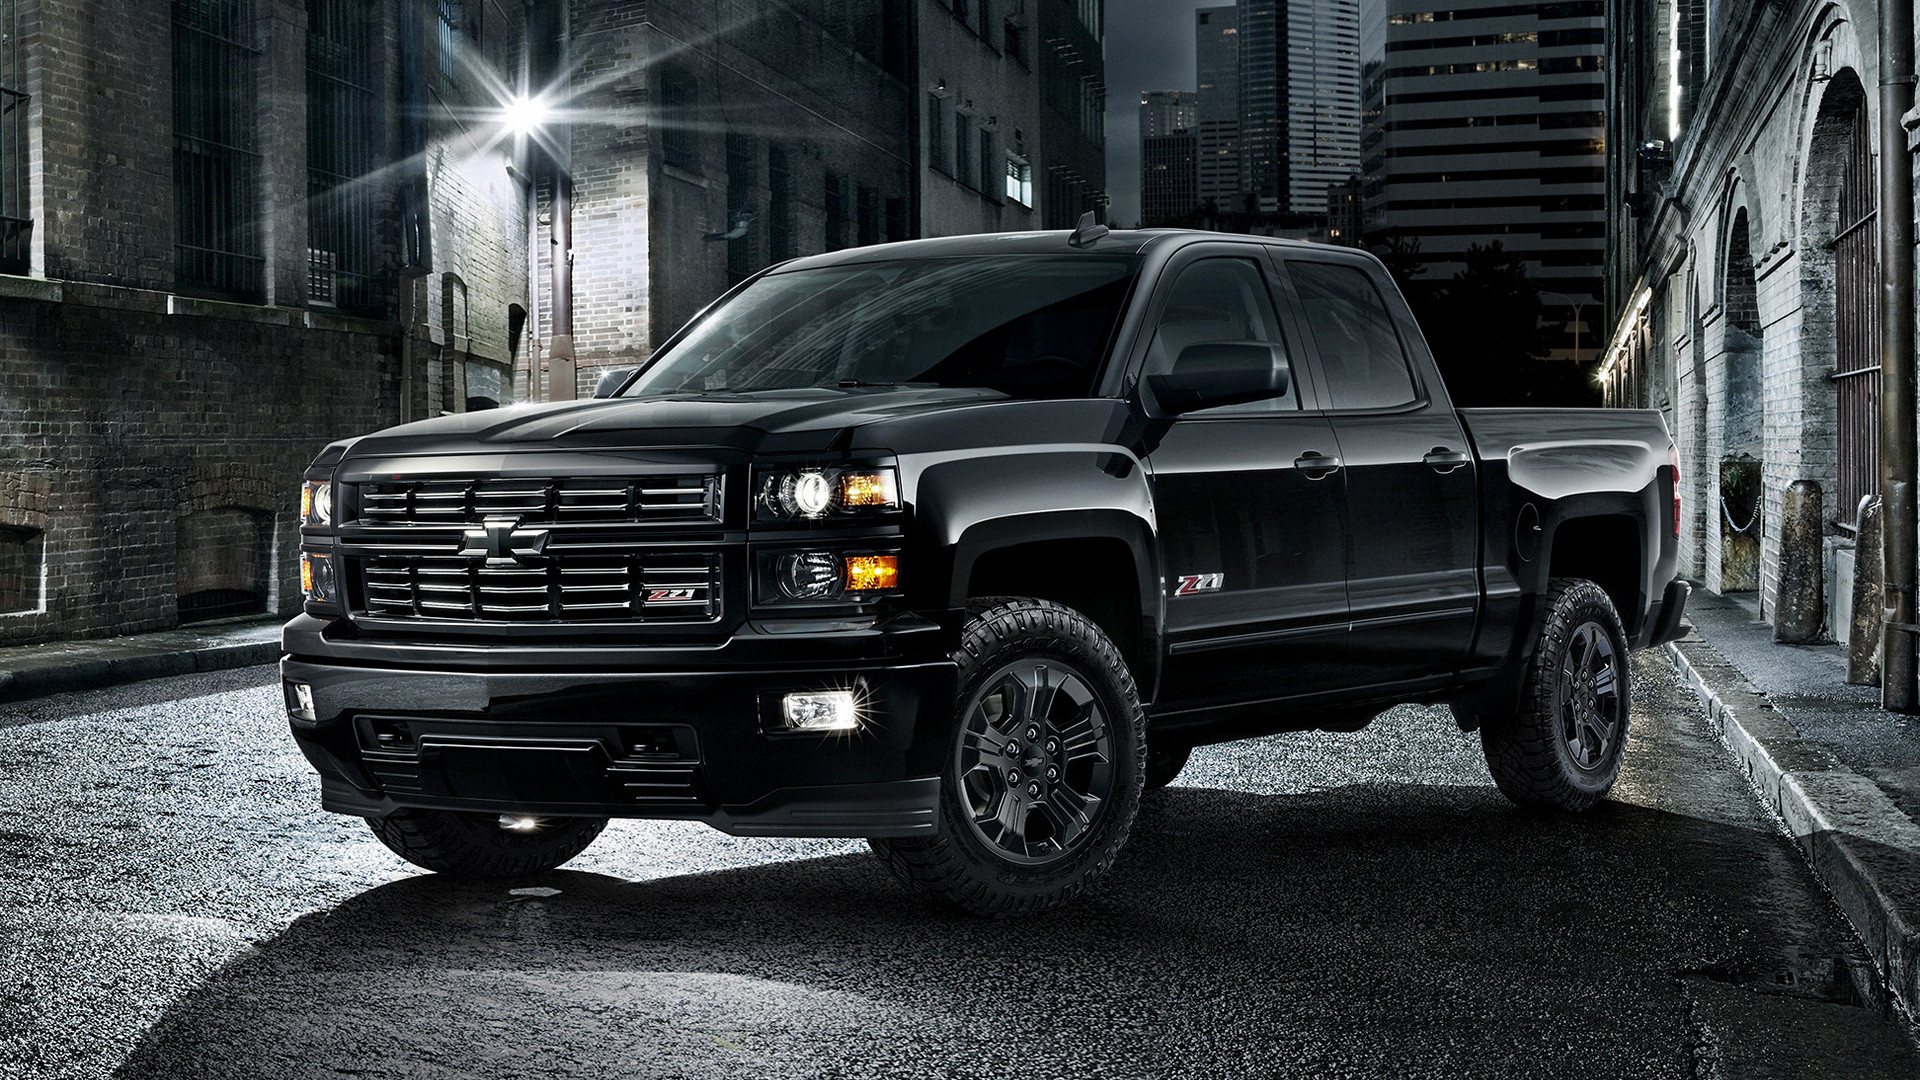 chevy silverado wallpaper  Chevy Silverado Wallpaper (56  images)